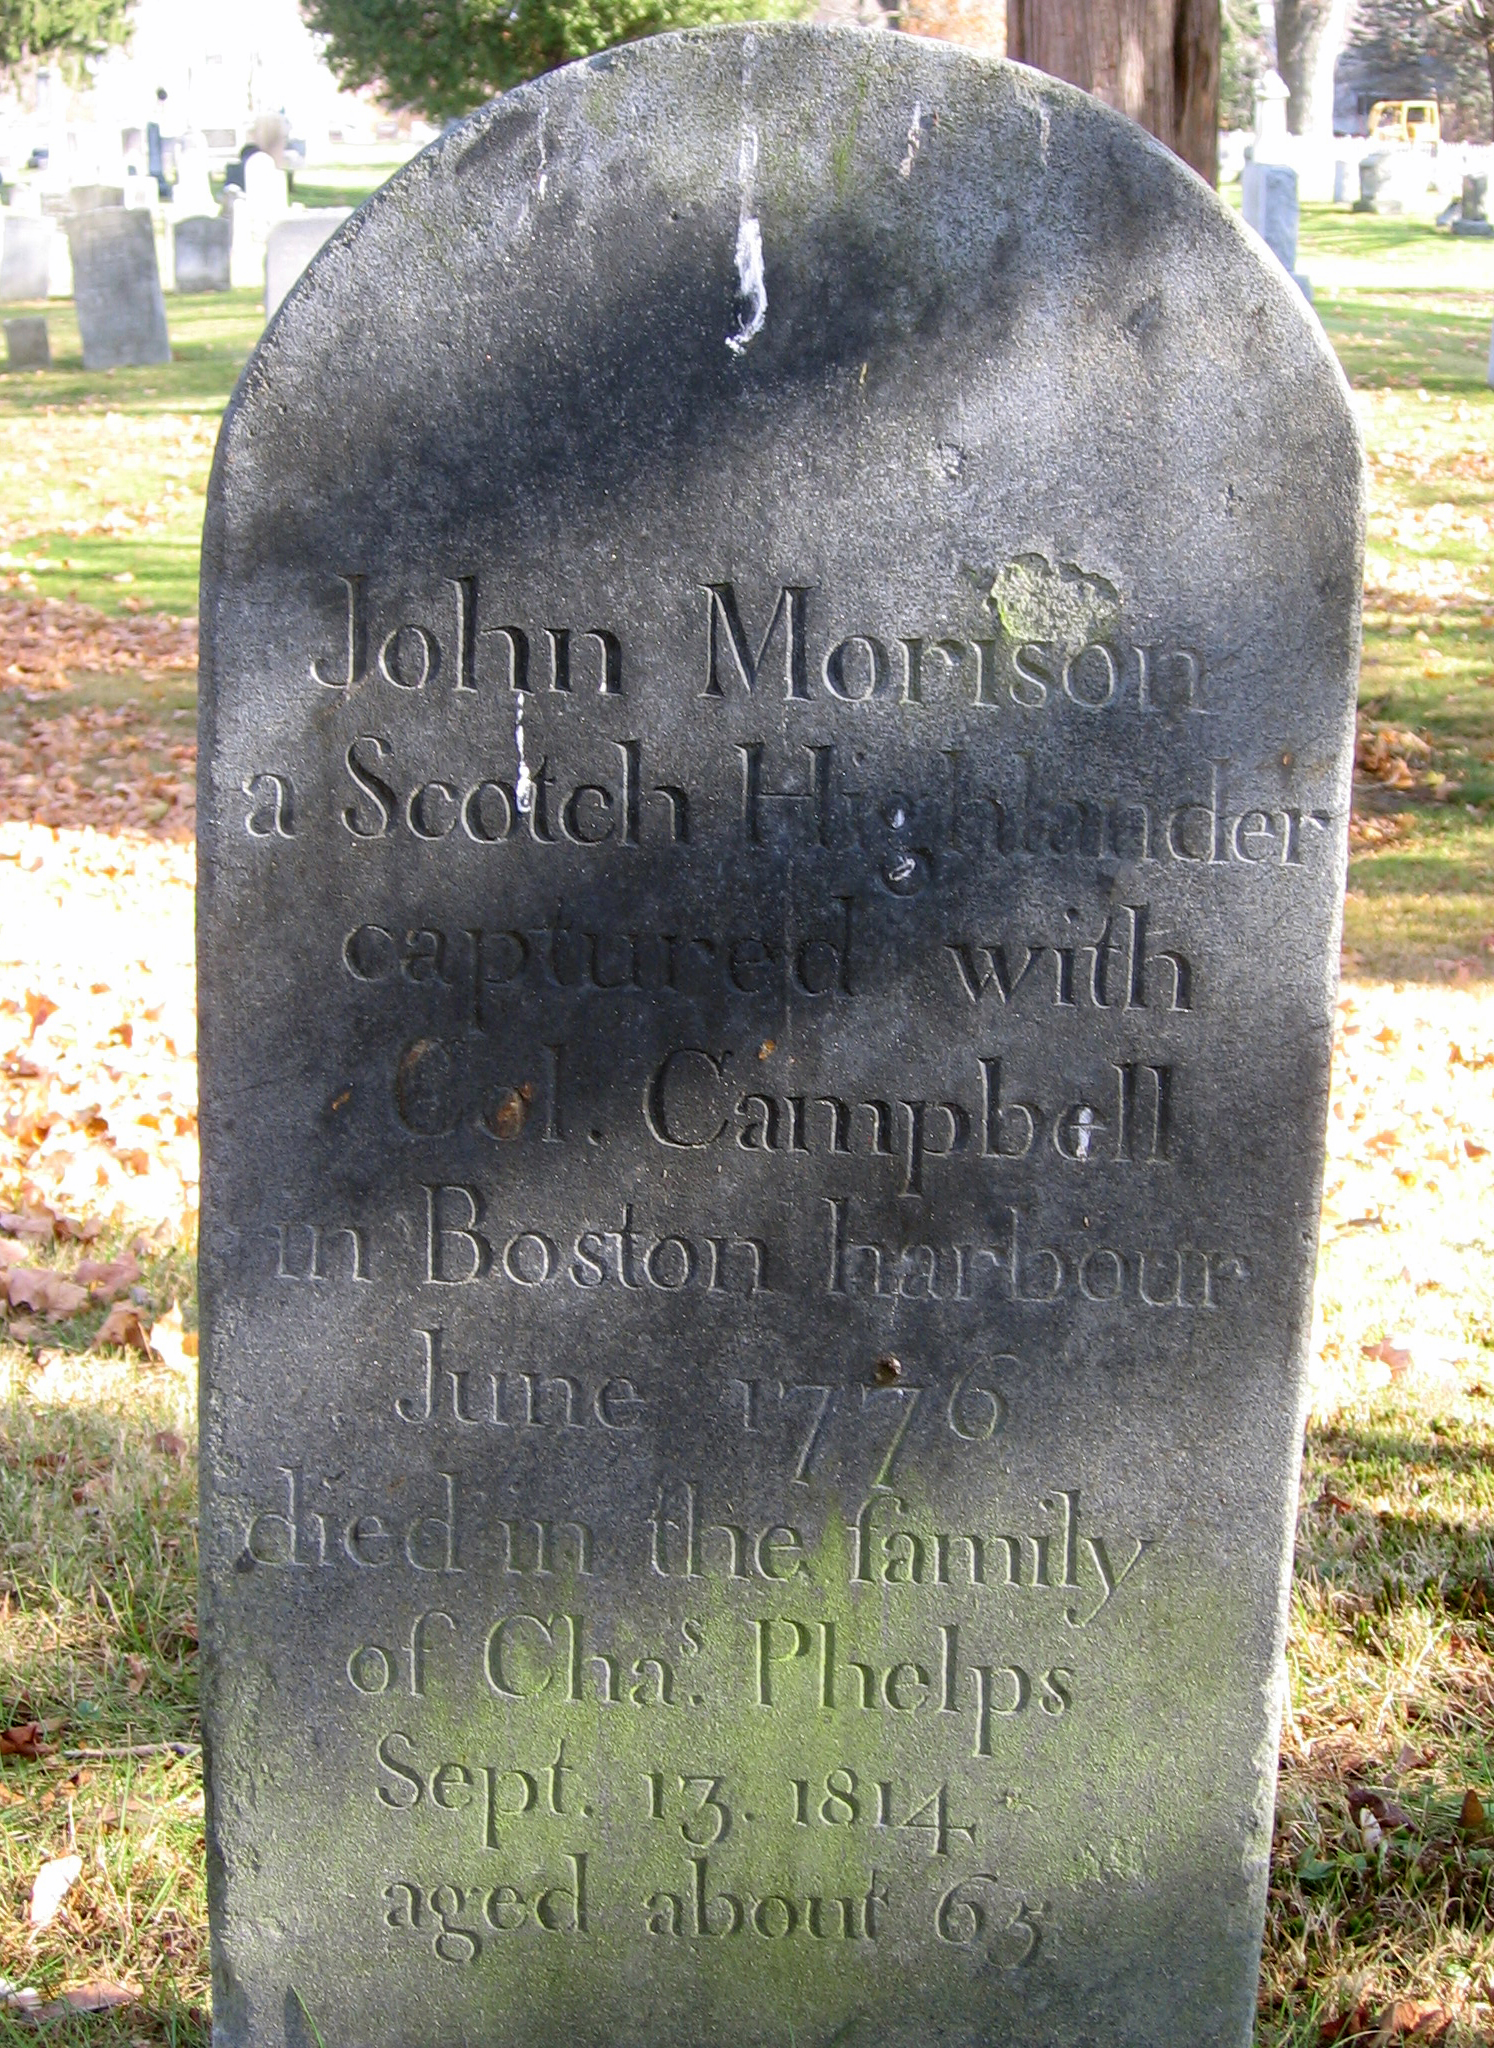 "Morrison's grave located in the Old Hadley Cemetery. The gravestone reads ""John Morrison a Scotch Highlander captured with Col. Campbell in Boston harbor June 1770 died in the family of Cha. Phelps Sept. 13 1814 aged about 65"""